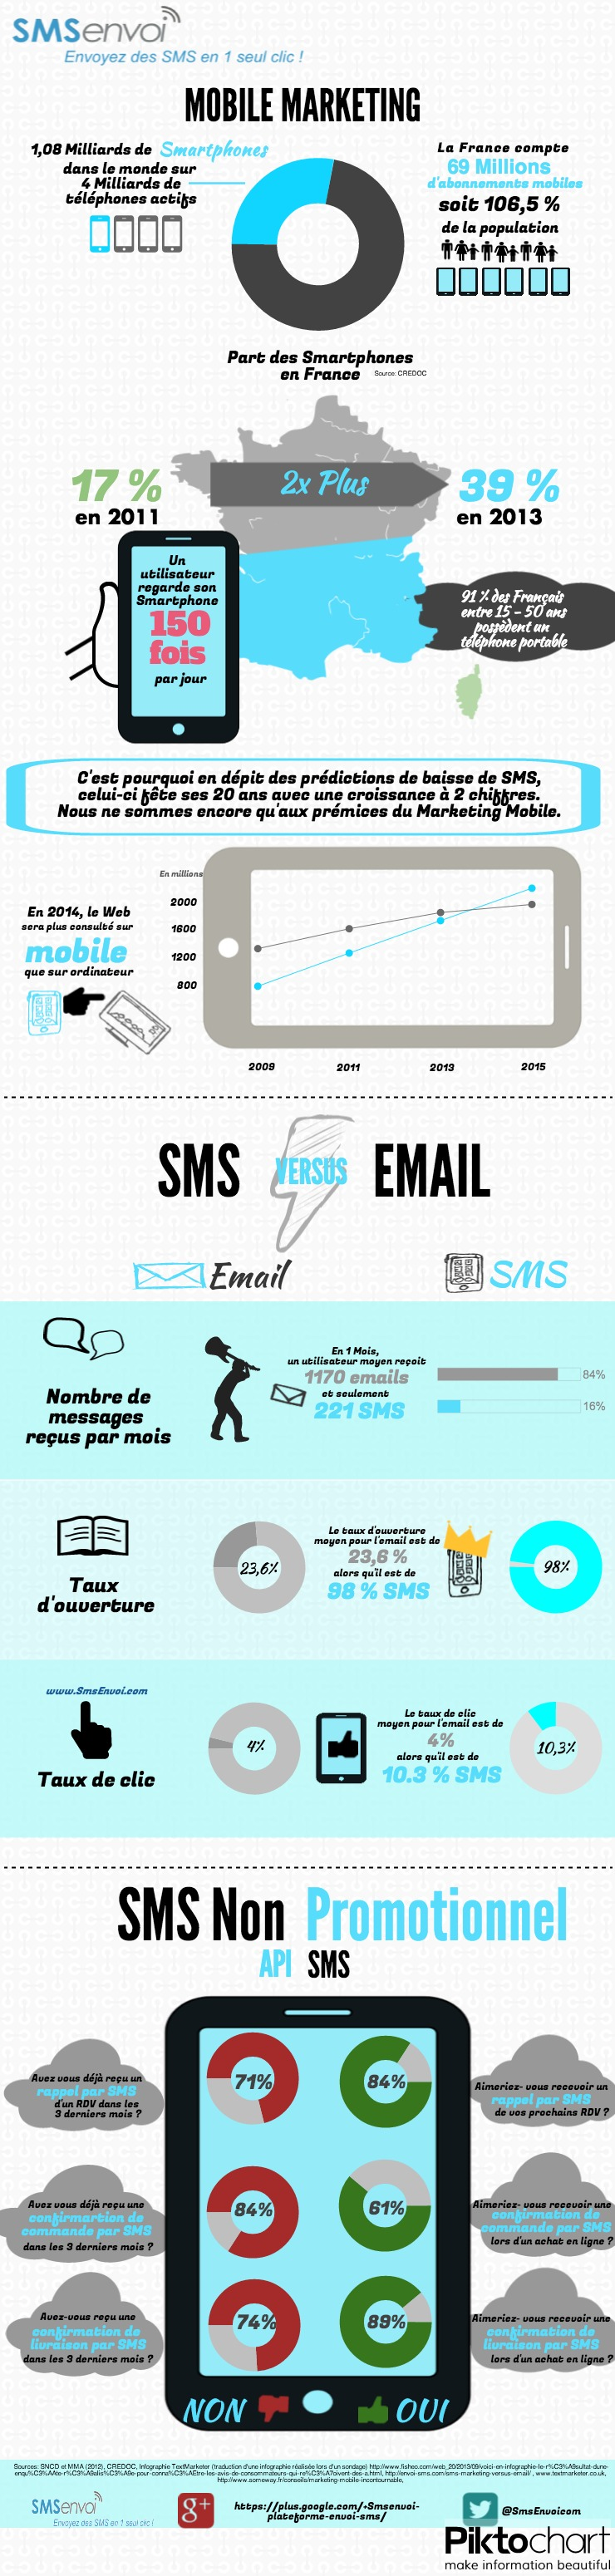 Infographie Marketing Mobile